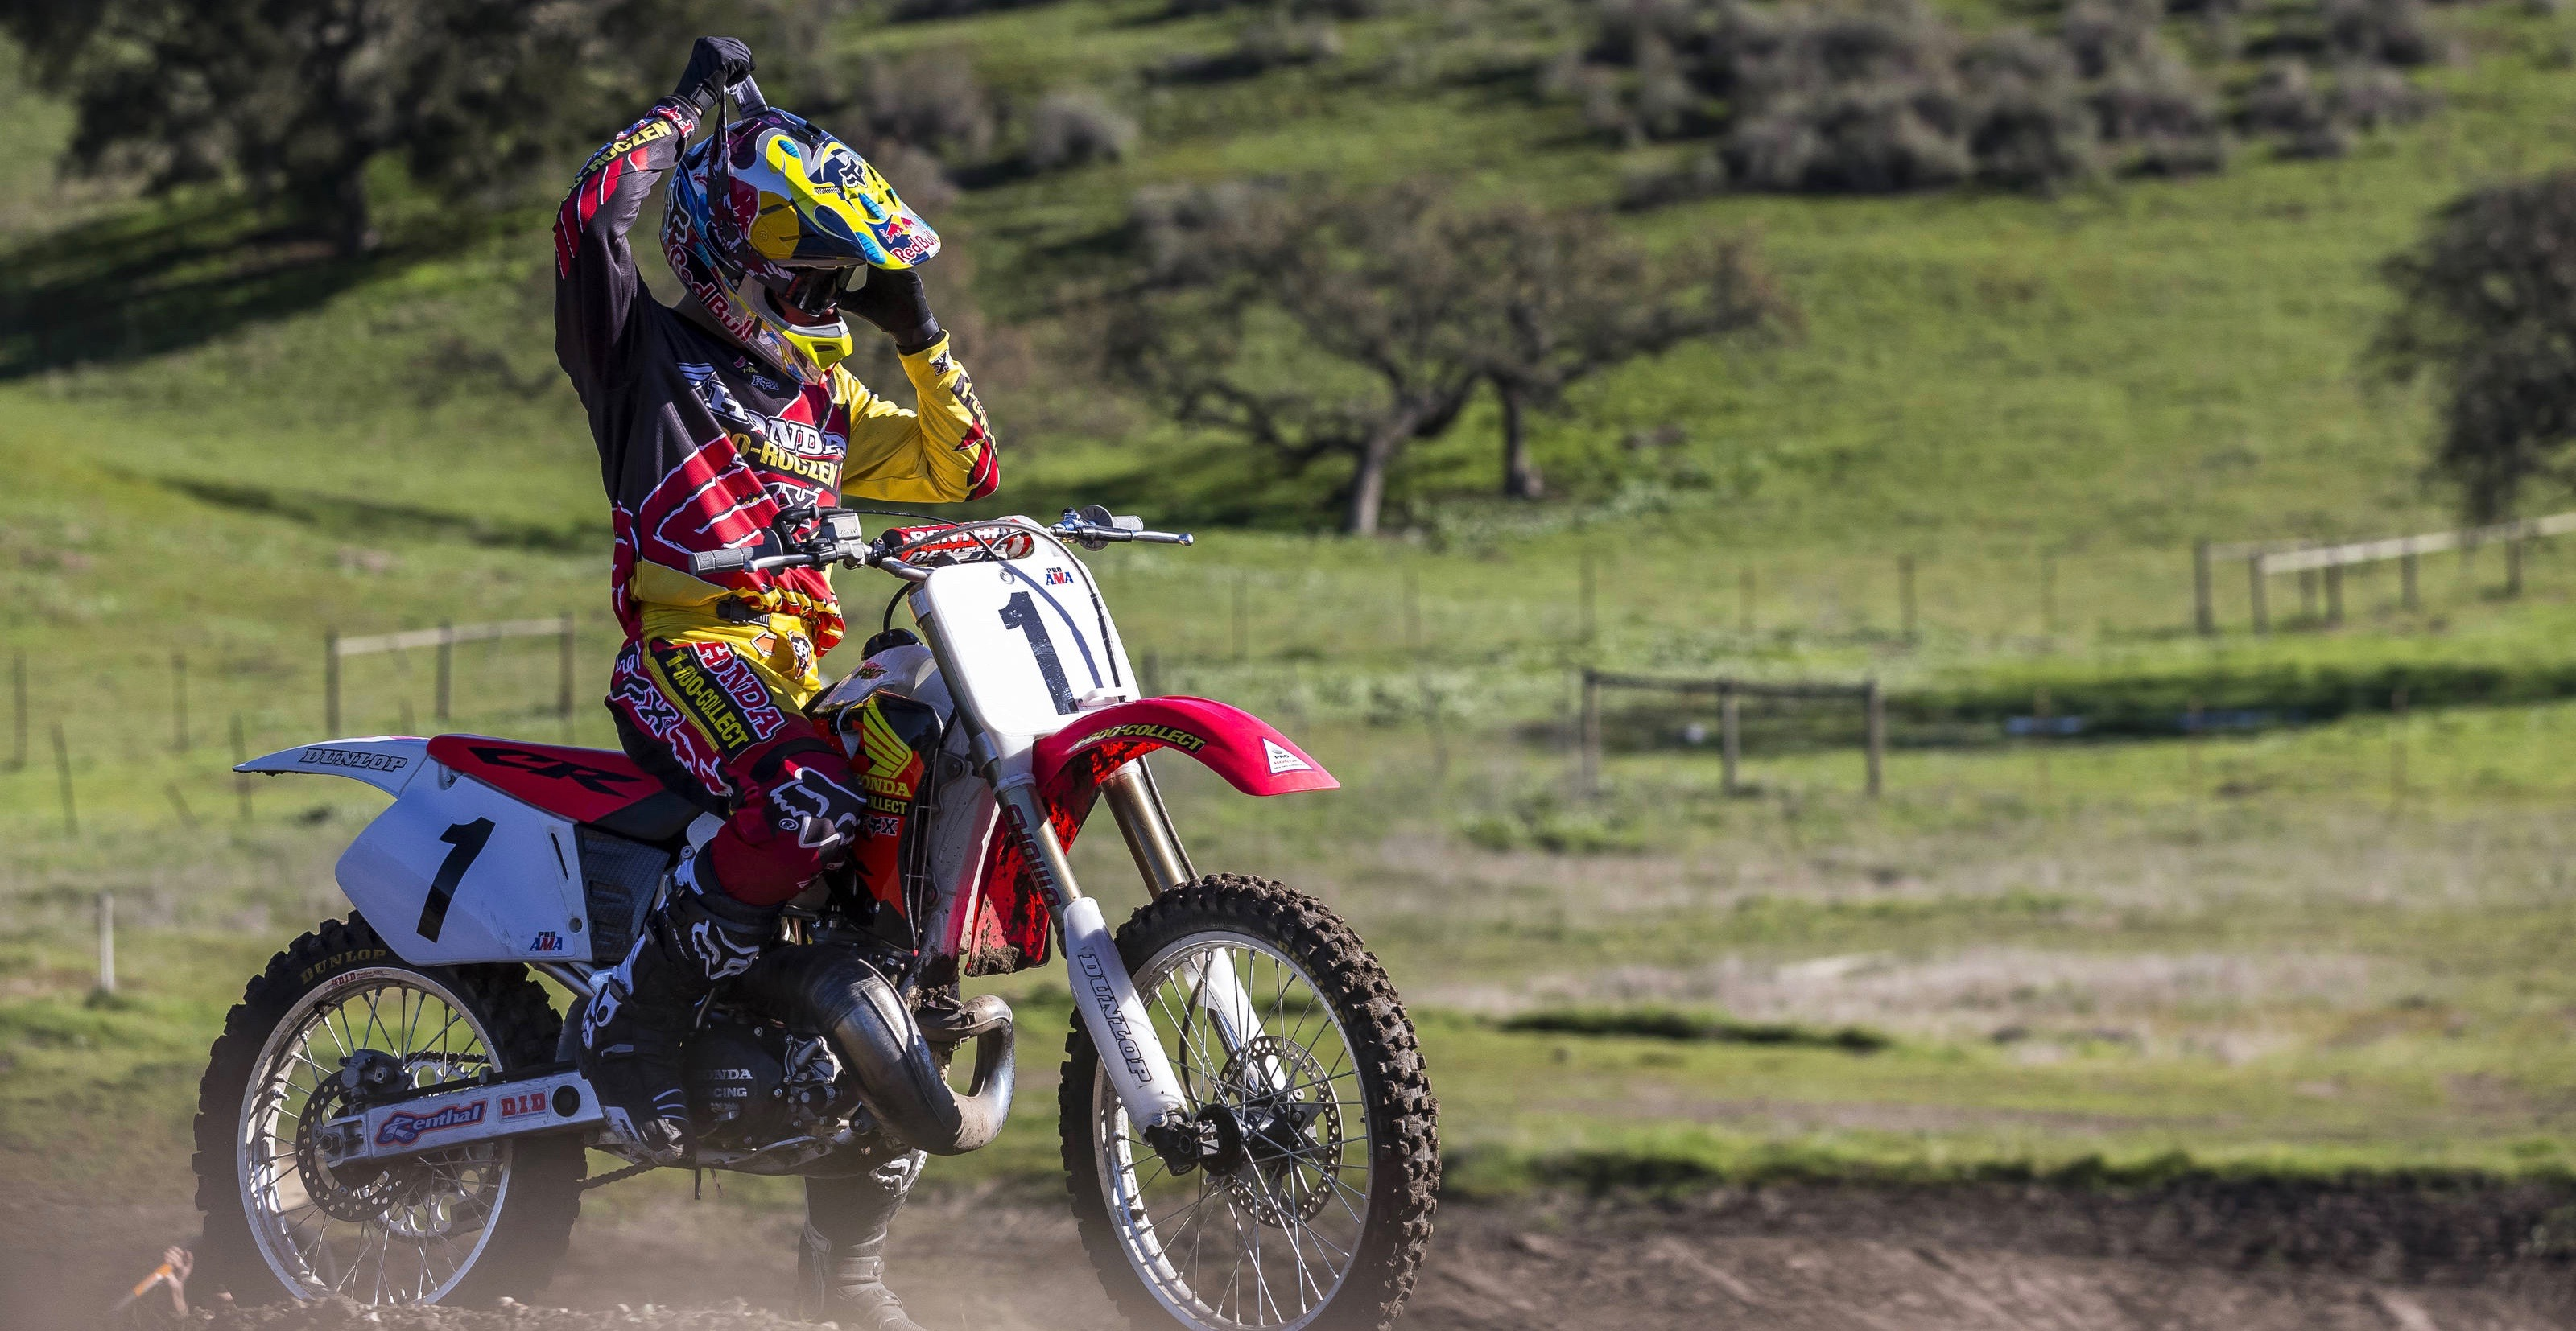 List of fastest production motorcycles further Yz125 The Bike They Cant Kill likewise Ken Roczen Rips Jeremy Mcgraths Classic 1996 Cr250 together with 15817223778 in addition Ugandan Knuckles Graces The Panda  munity. on 1978 yamaha dirt bike